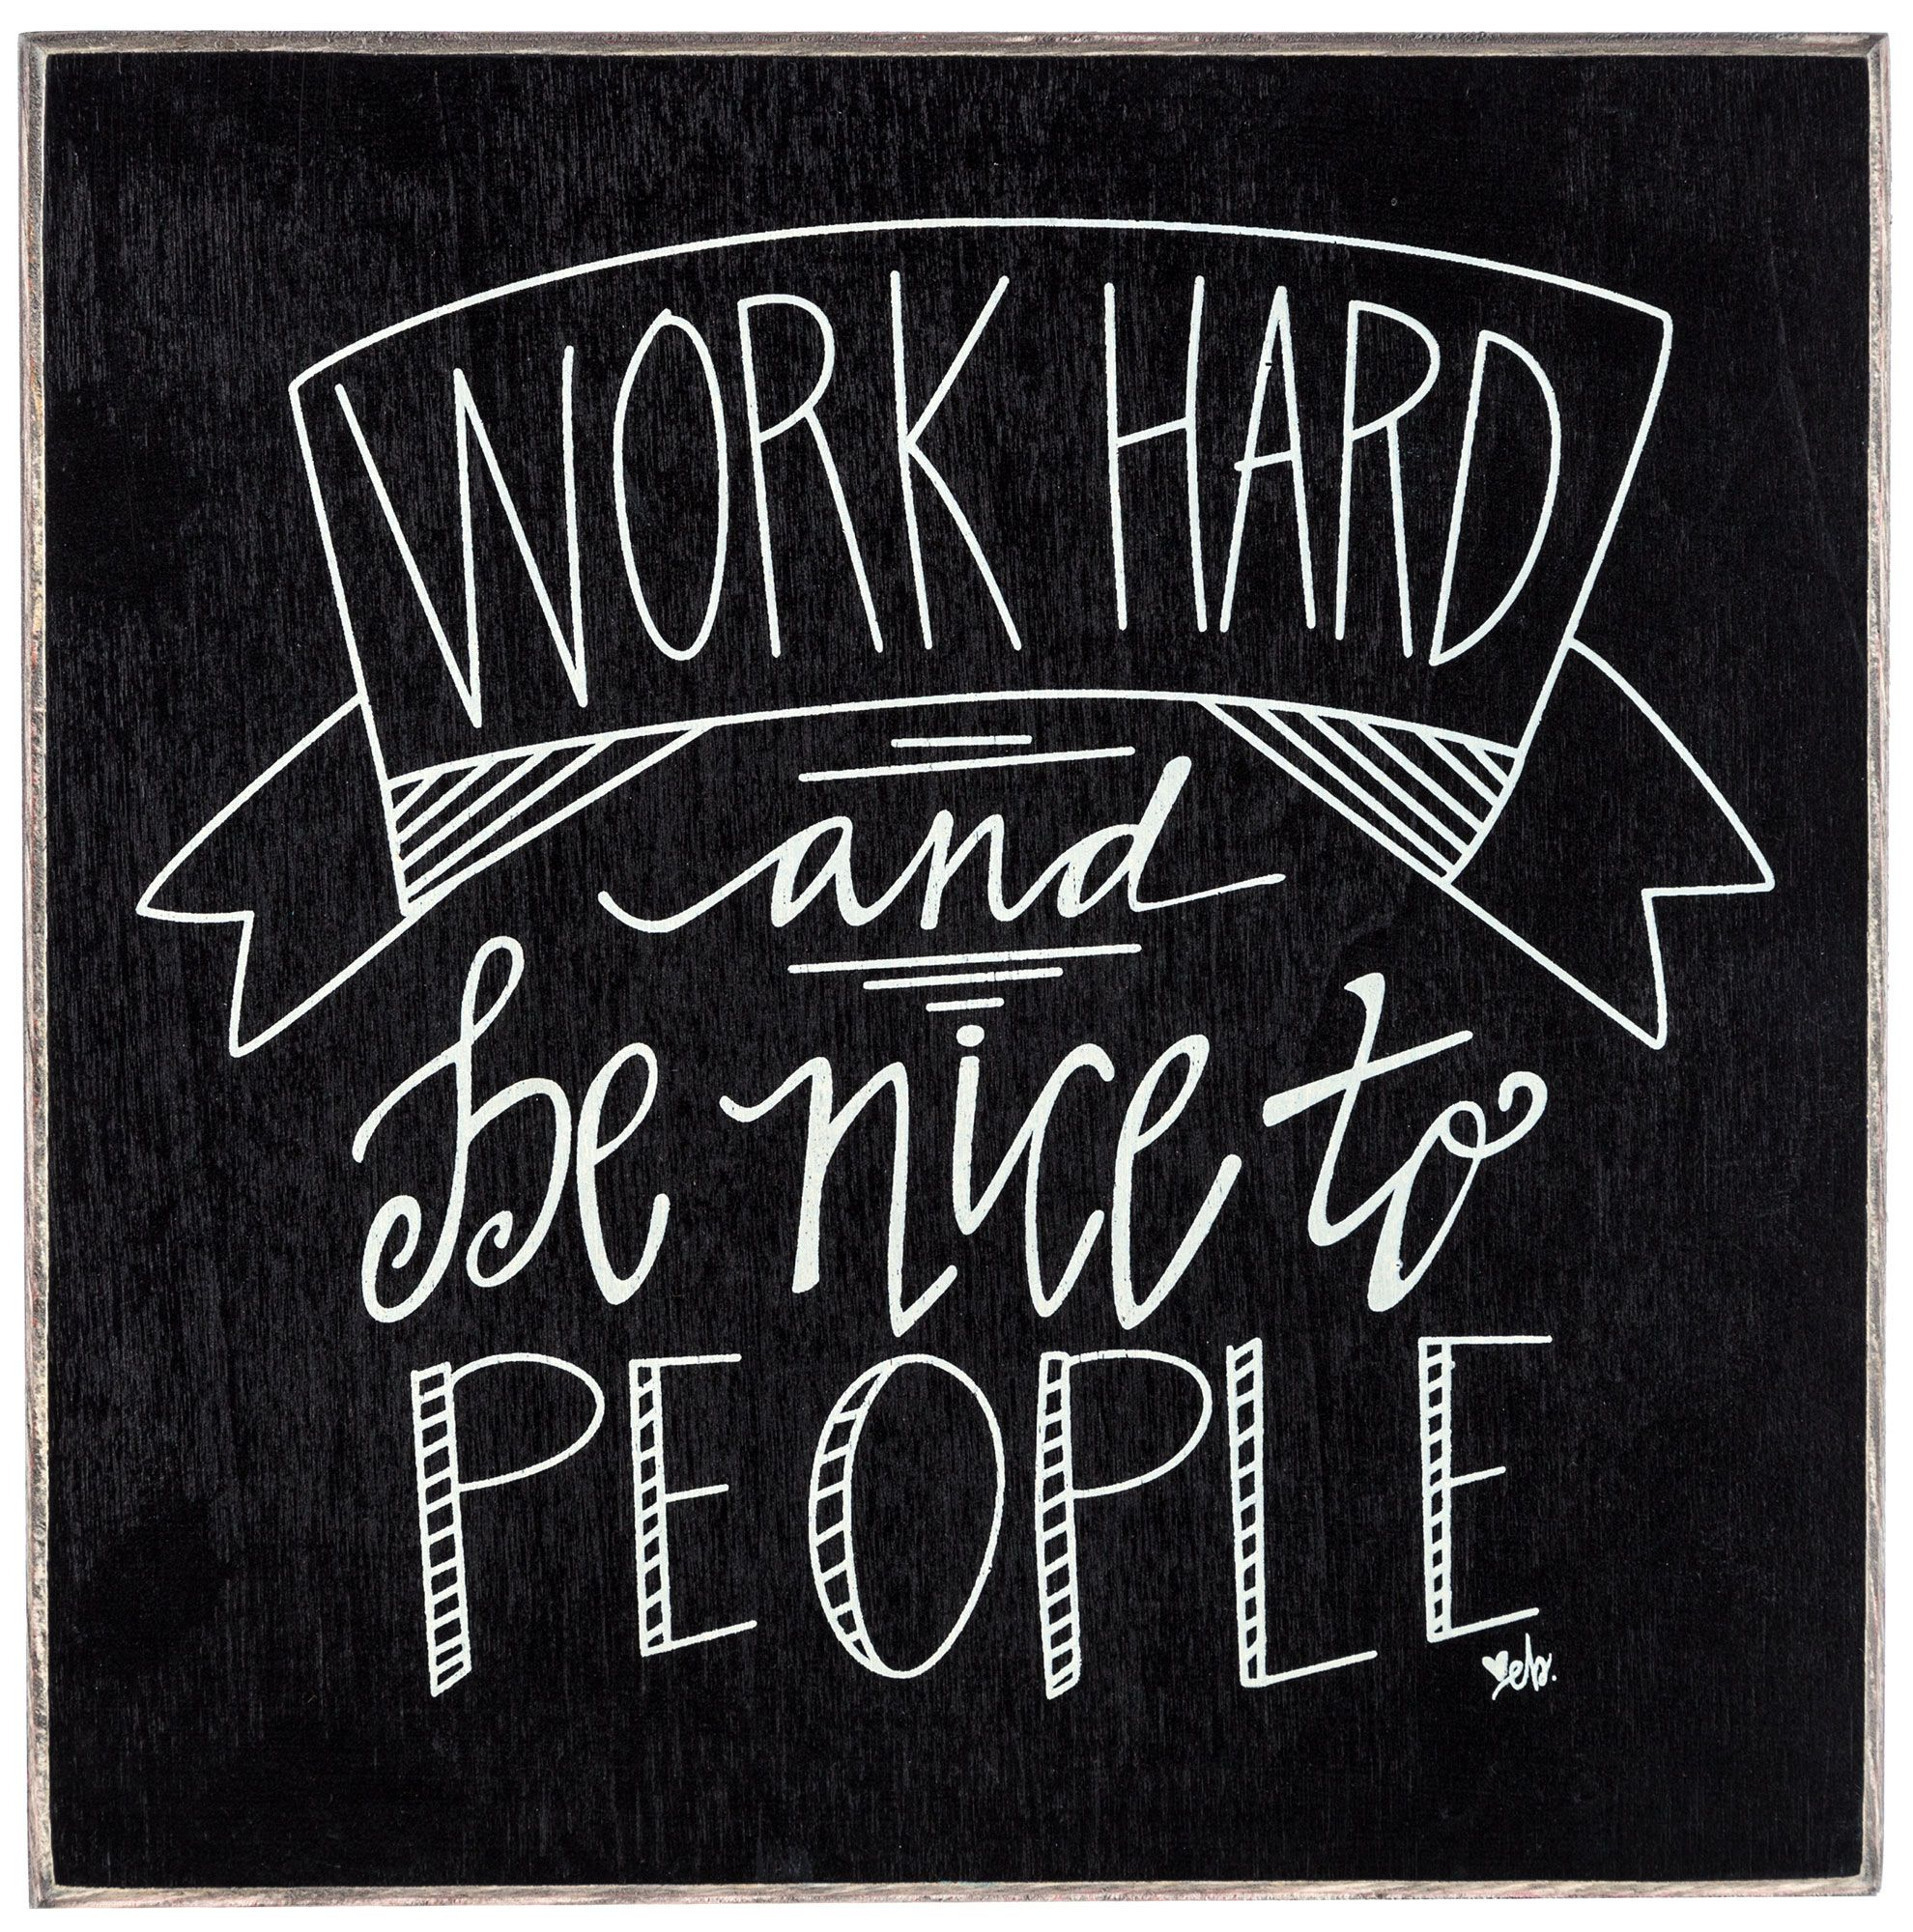 The Secret To Success Is To Work Hard And Be Nice To